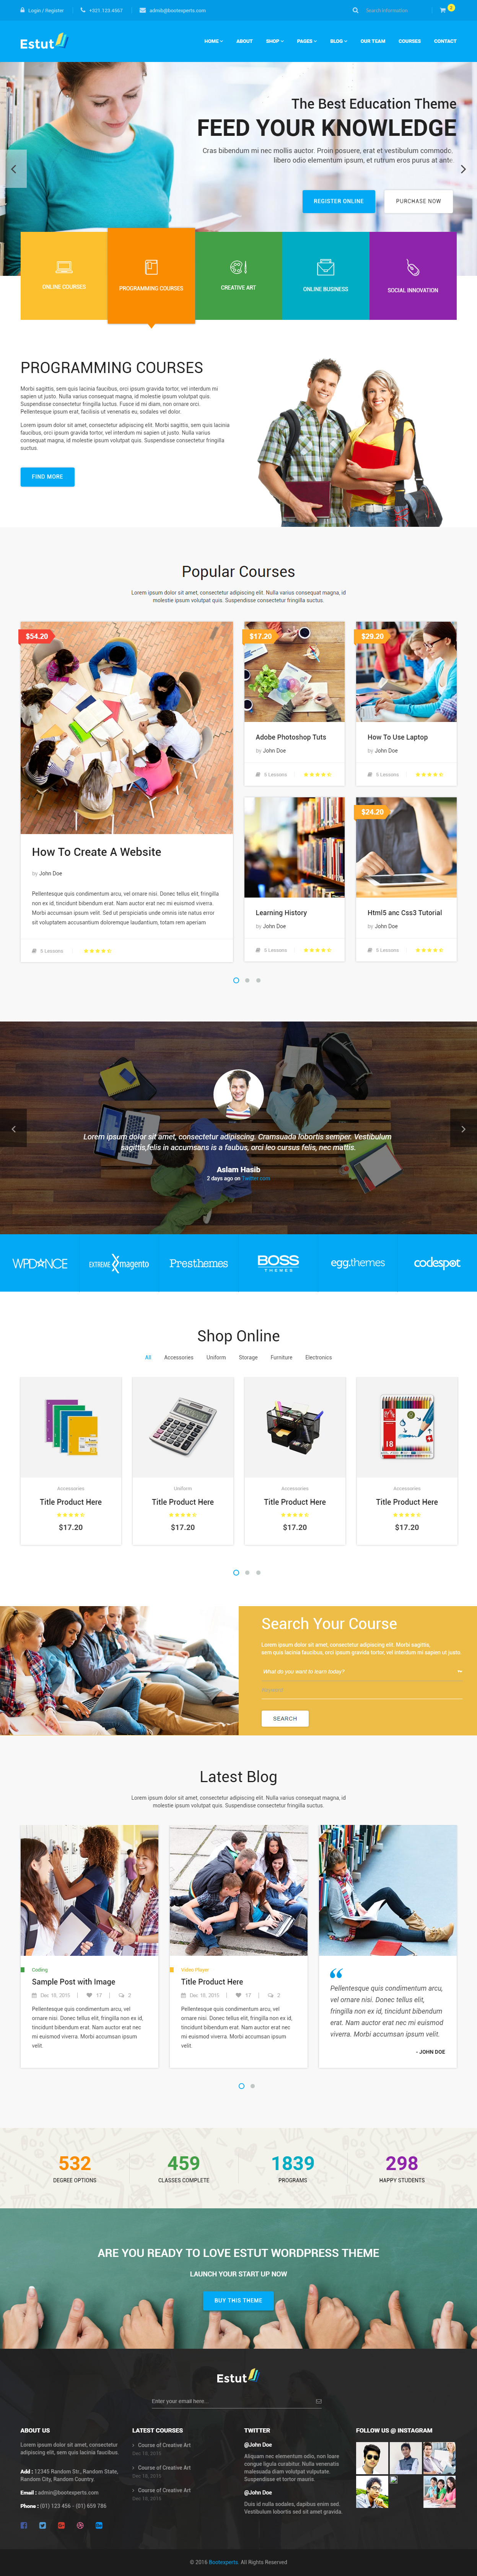 15 Best Html5 Education Website Templates In 2017 Responsive Miracle